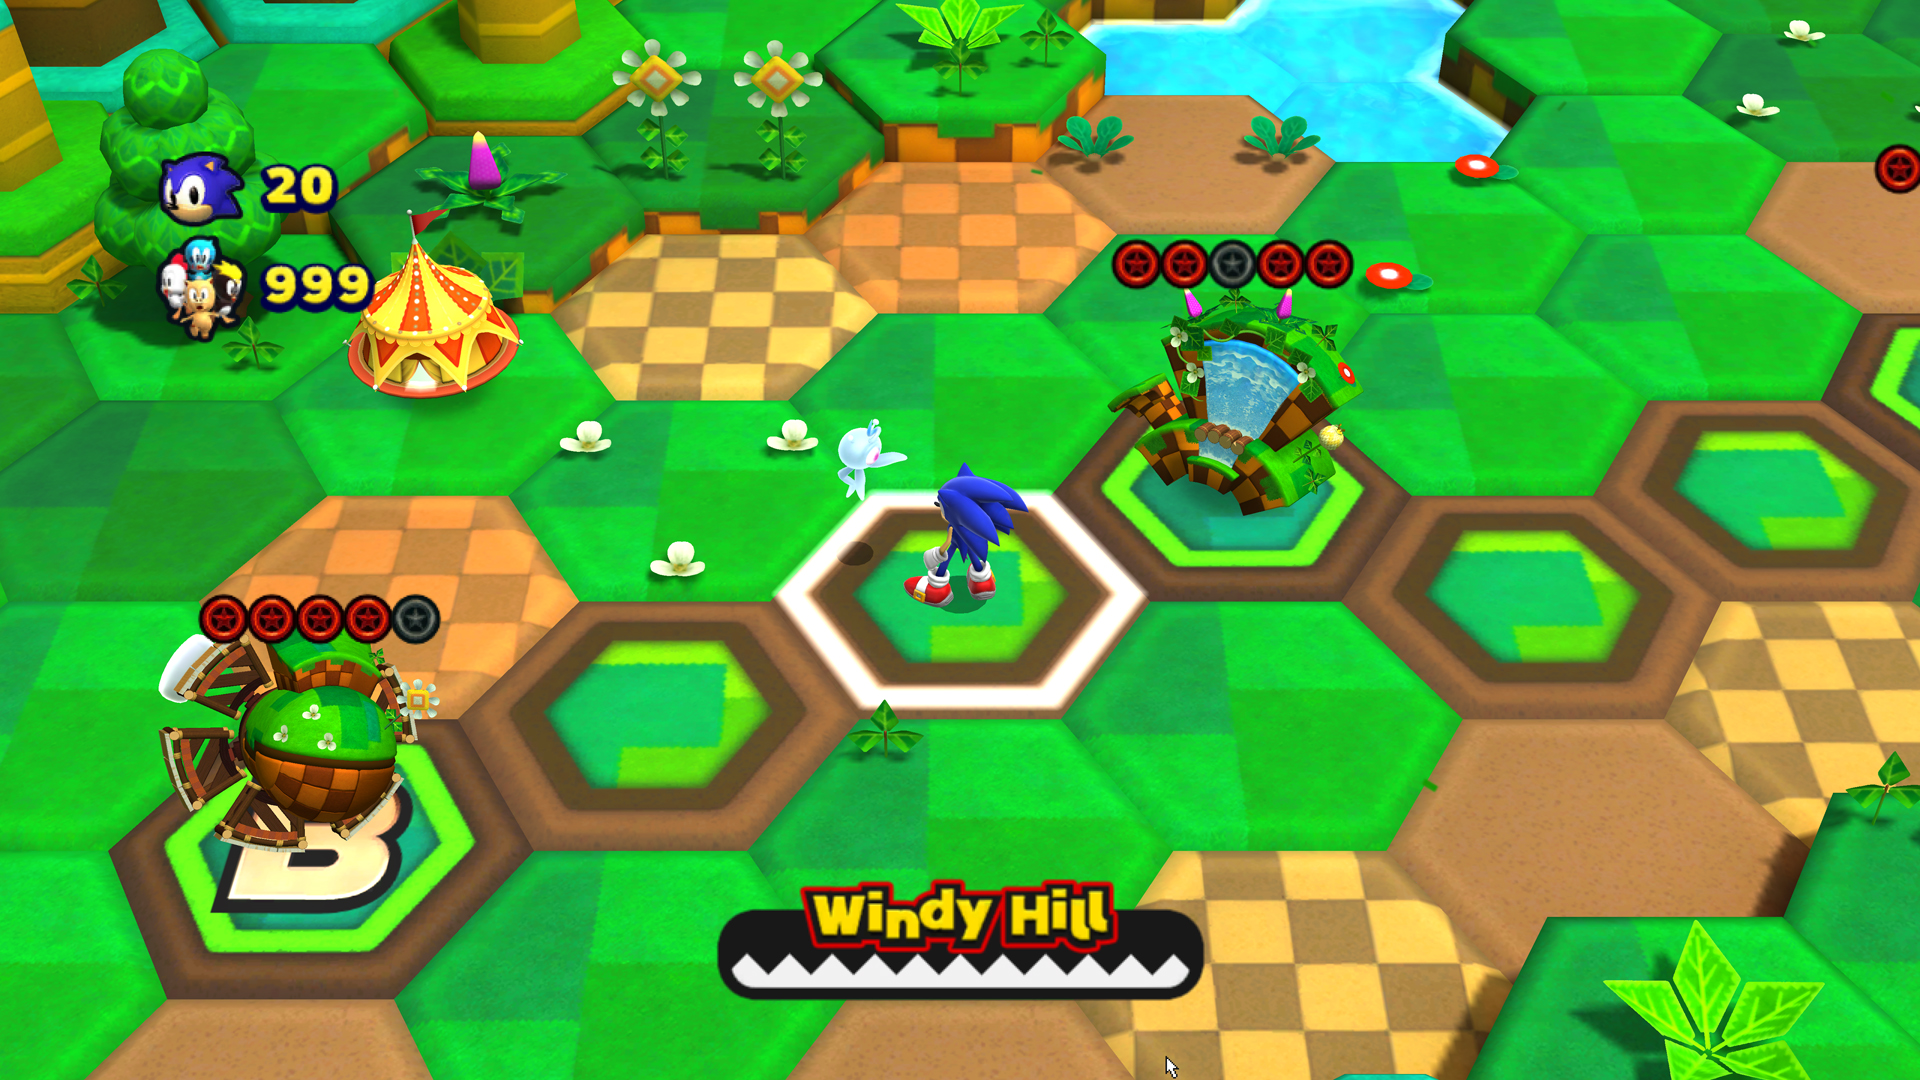 New sonic lost world screens reveal miiverse functions game map 28318miiversea13080101 gumiabroncs Images